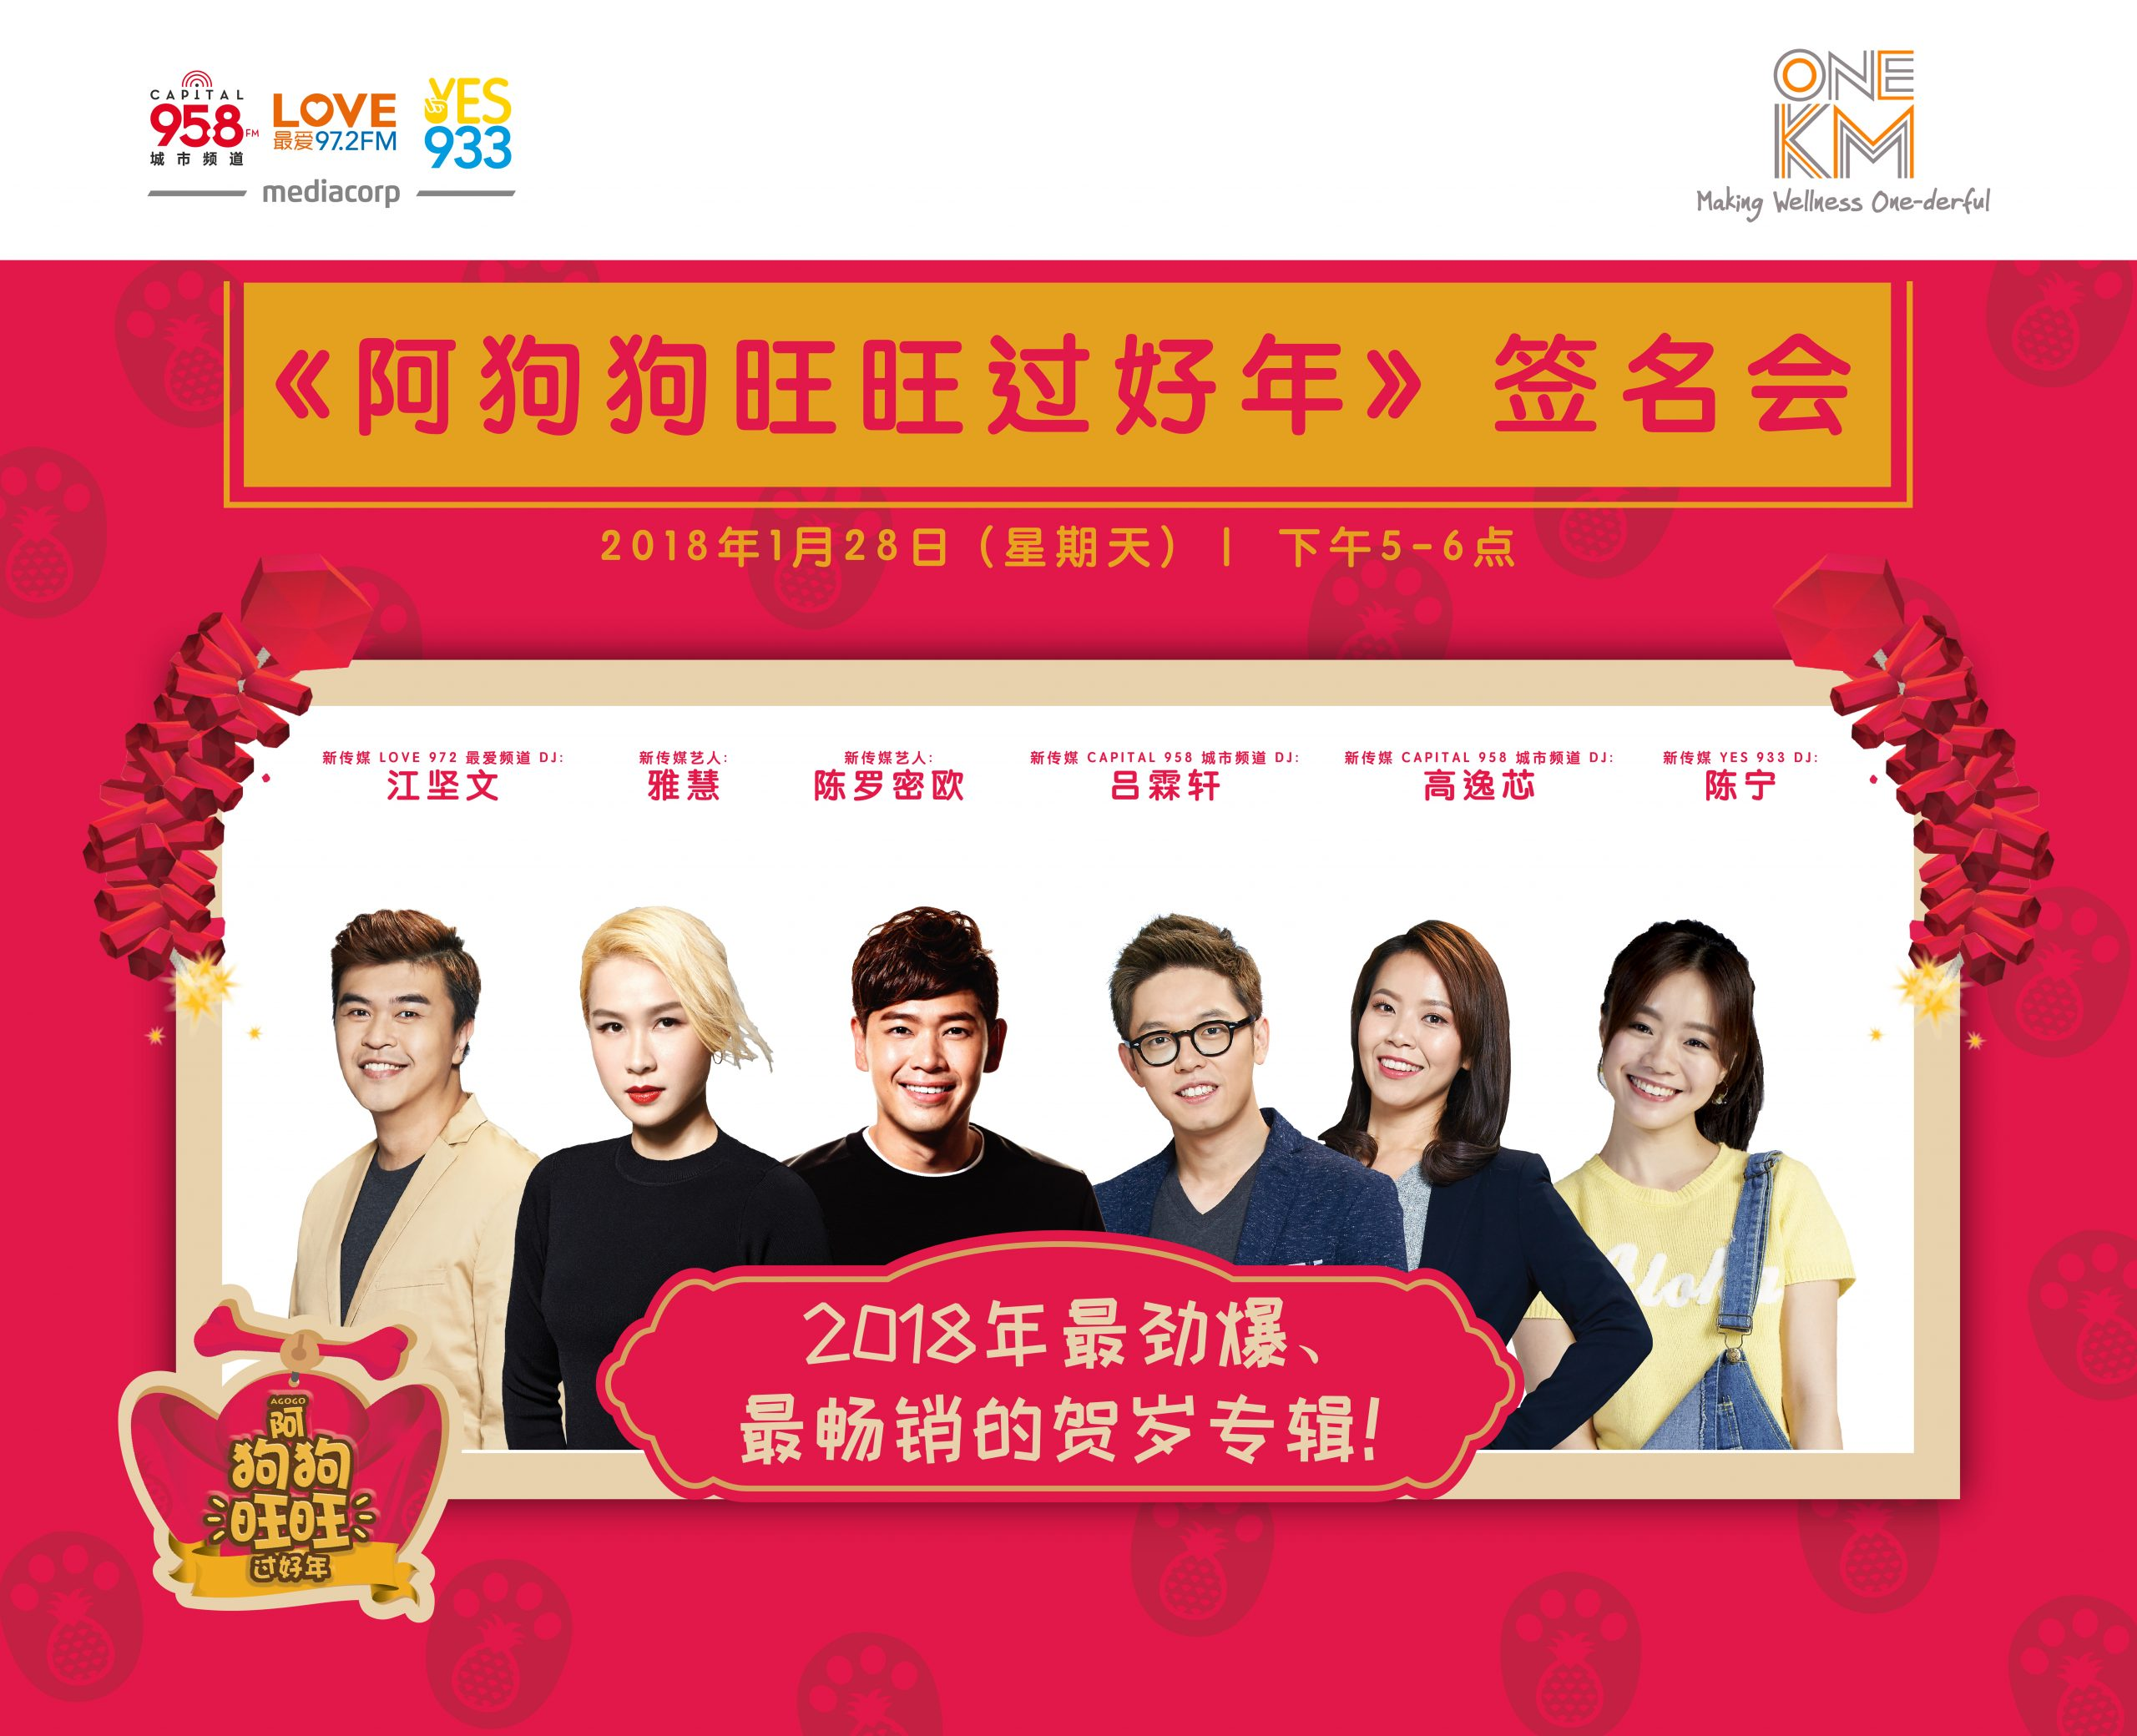 Mediacorp CNY event backdrop design